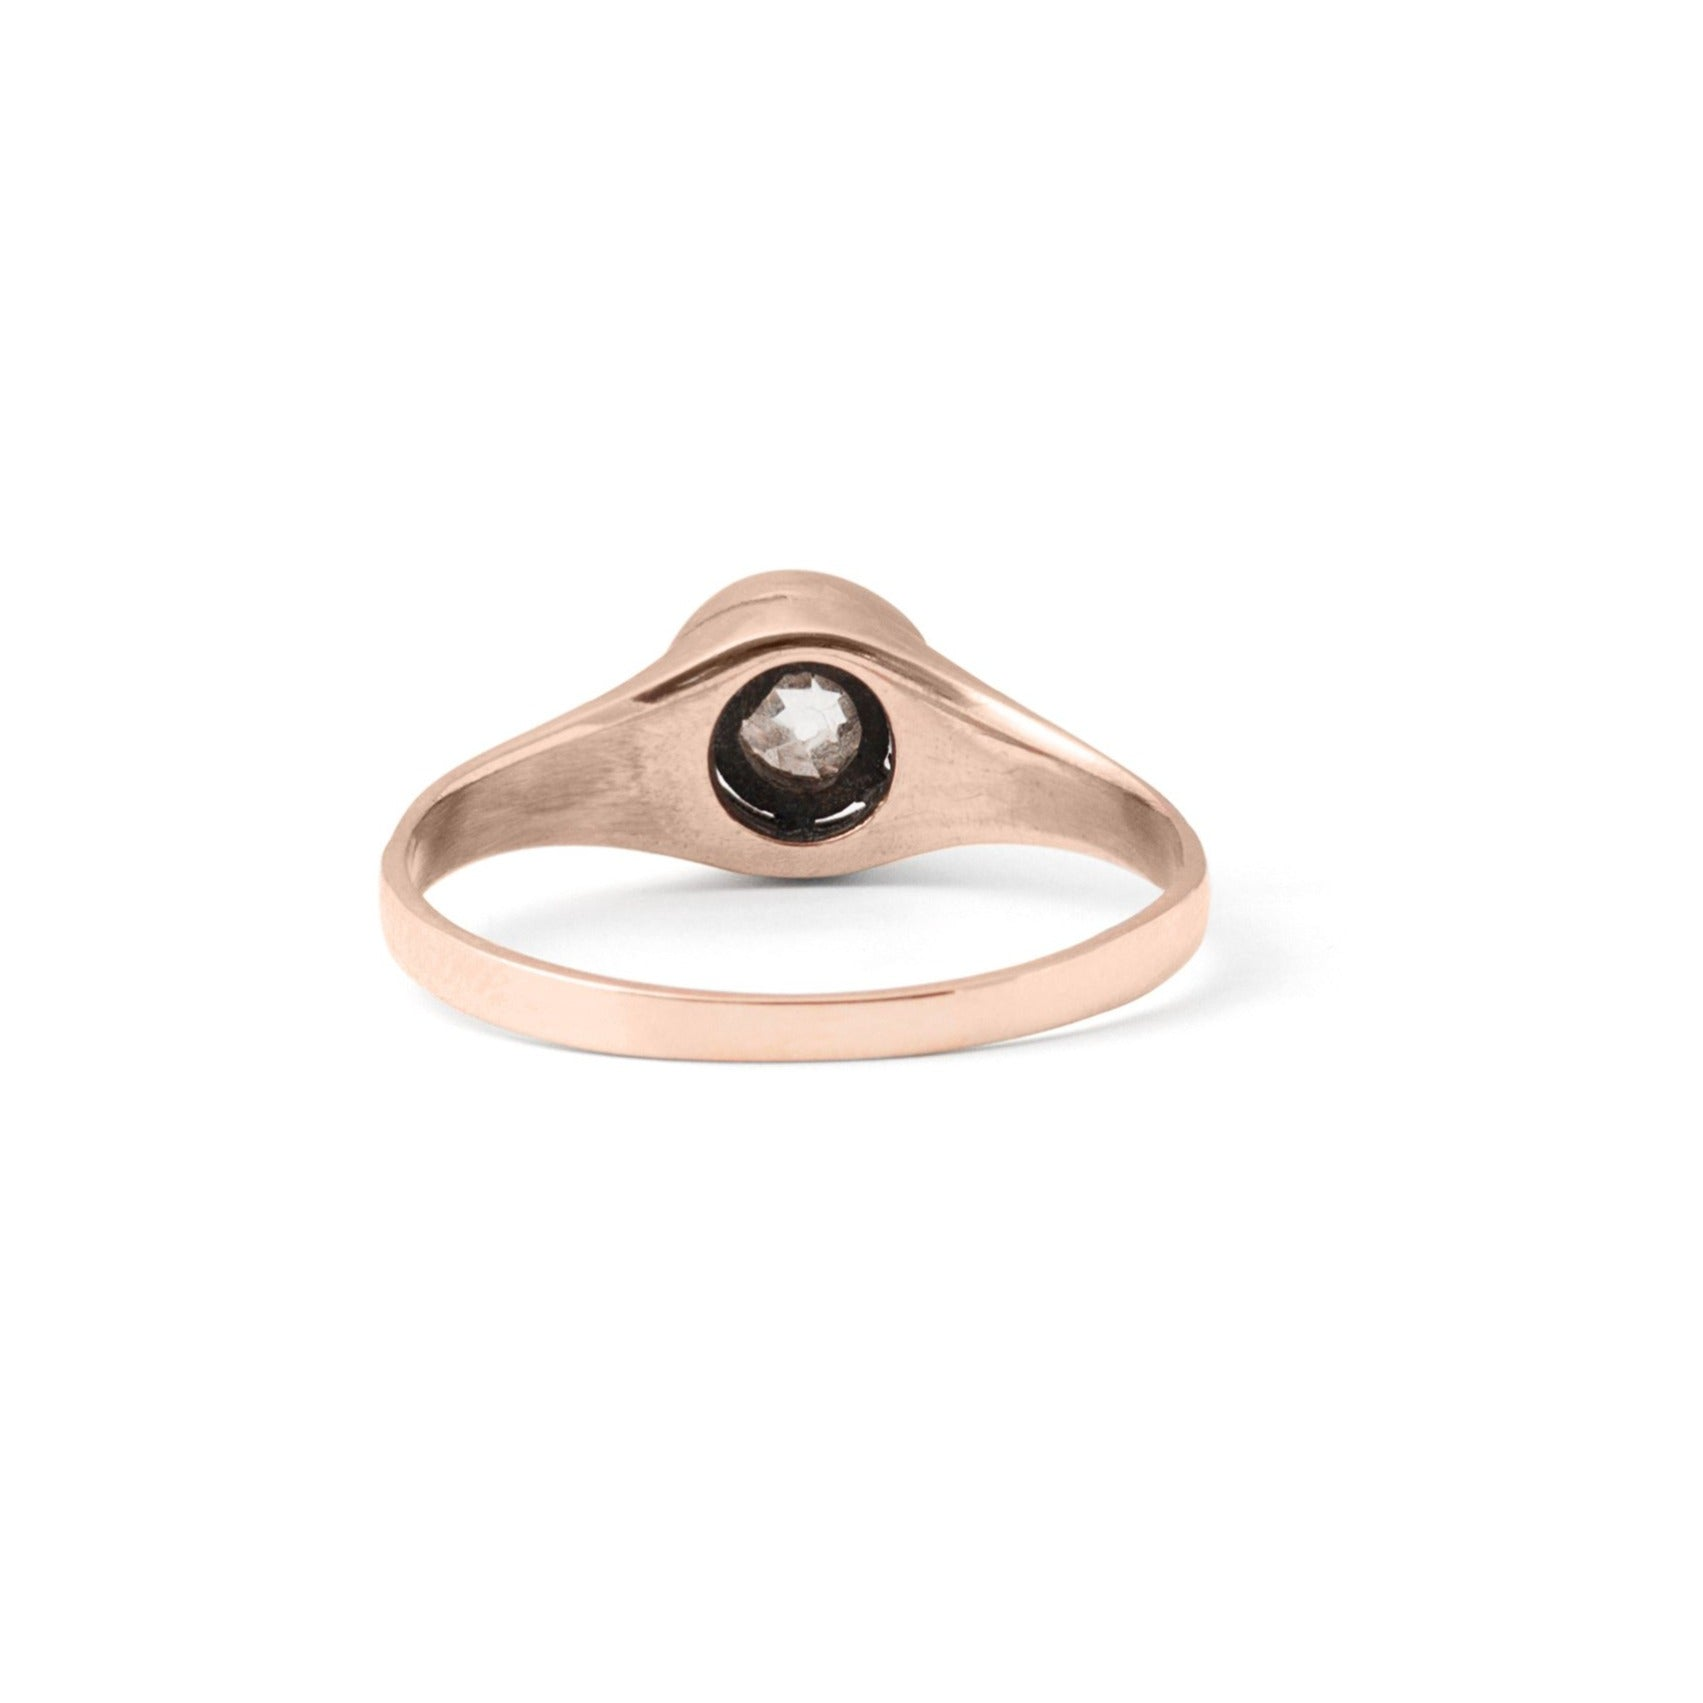 Victorian Old Mine Cut Solitaire and 14k Rose Gold Ring